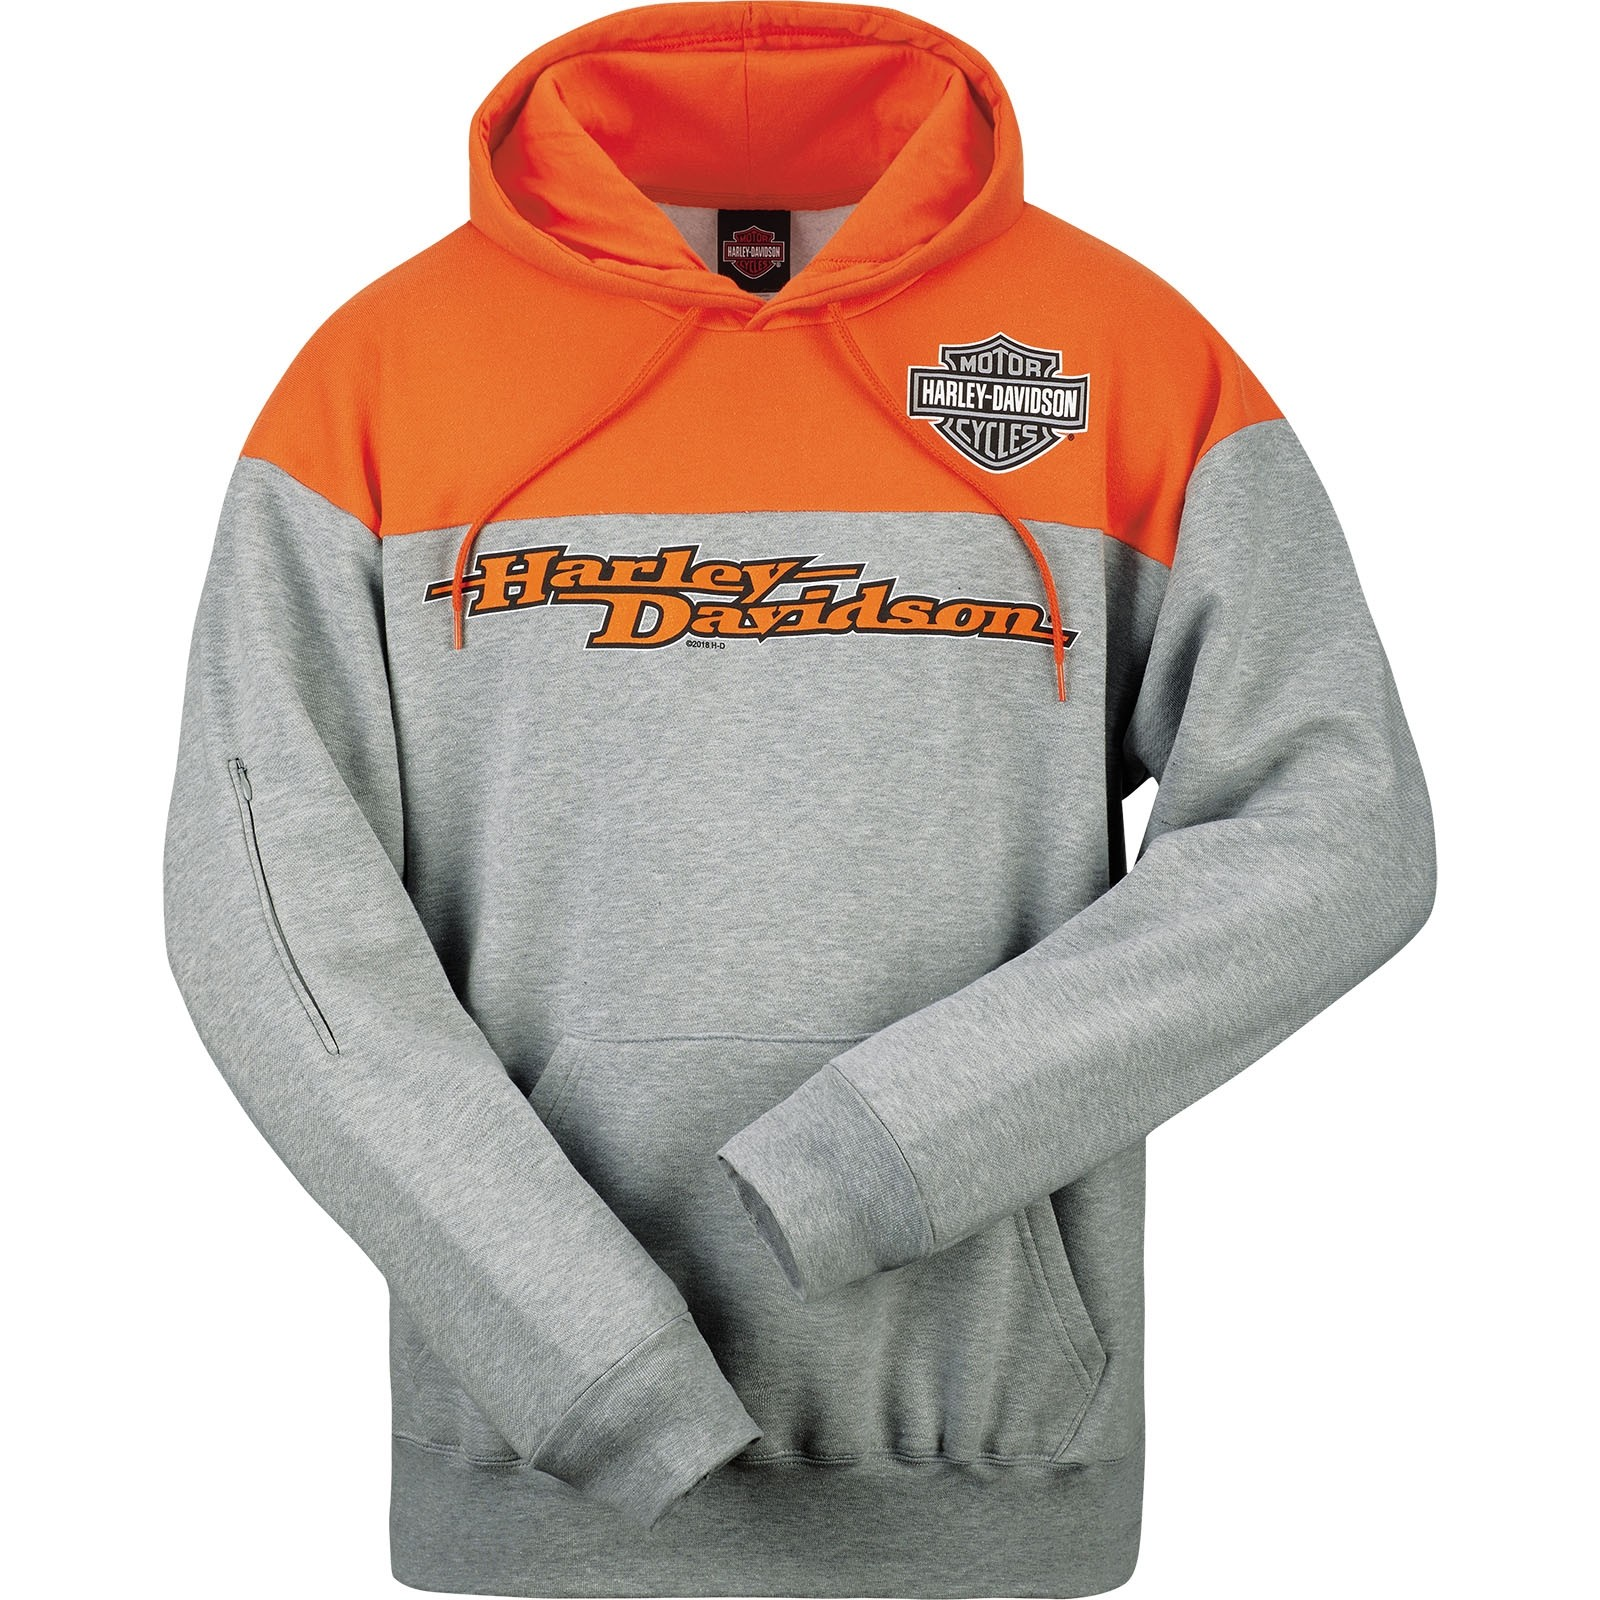 harley davidson pullover hooded sweatshirt with tech. Black Bedroom Furniture Sets. Home Design Ideas